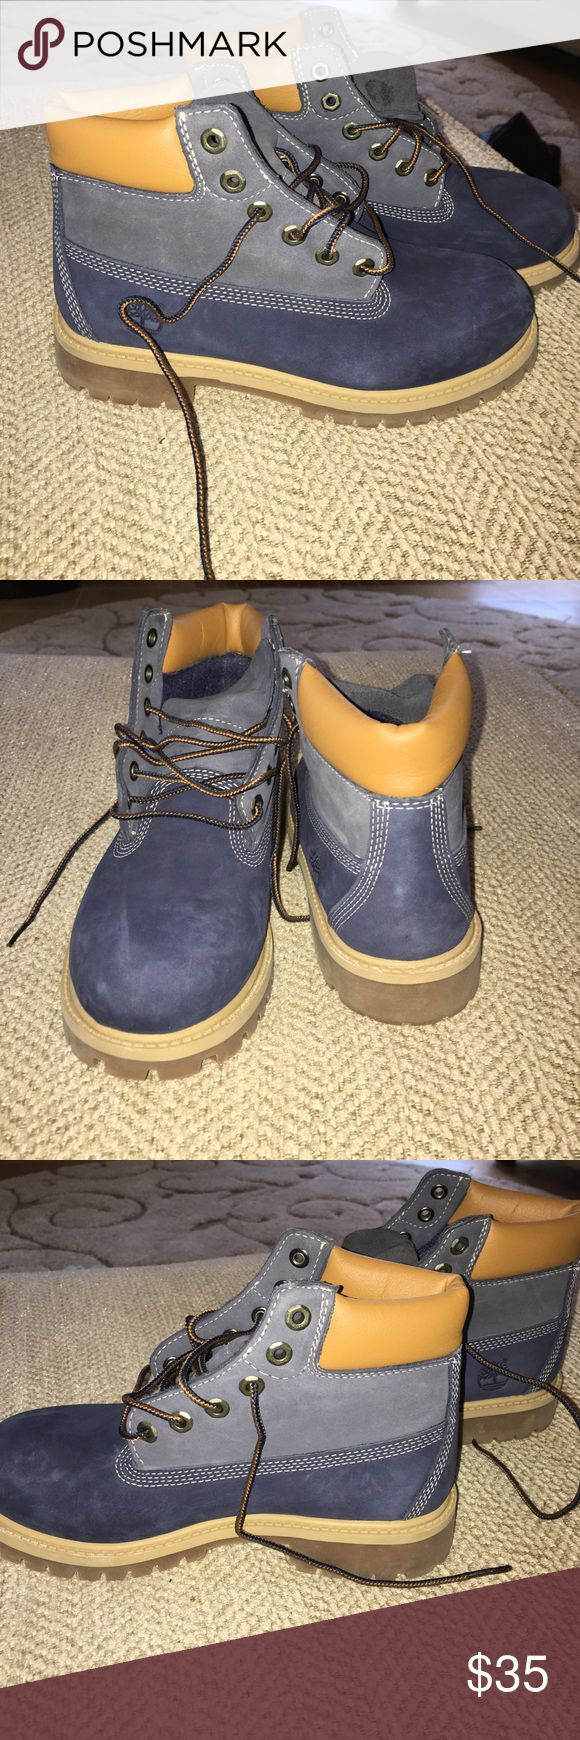 Boys timberland size 4, worn once. Only been worn once, great condition perfect for a young boy or girl. Size 4! Timberland Shoes Ankle Boots & Booties